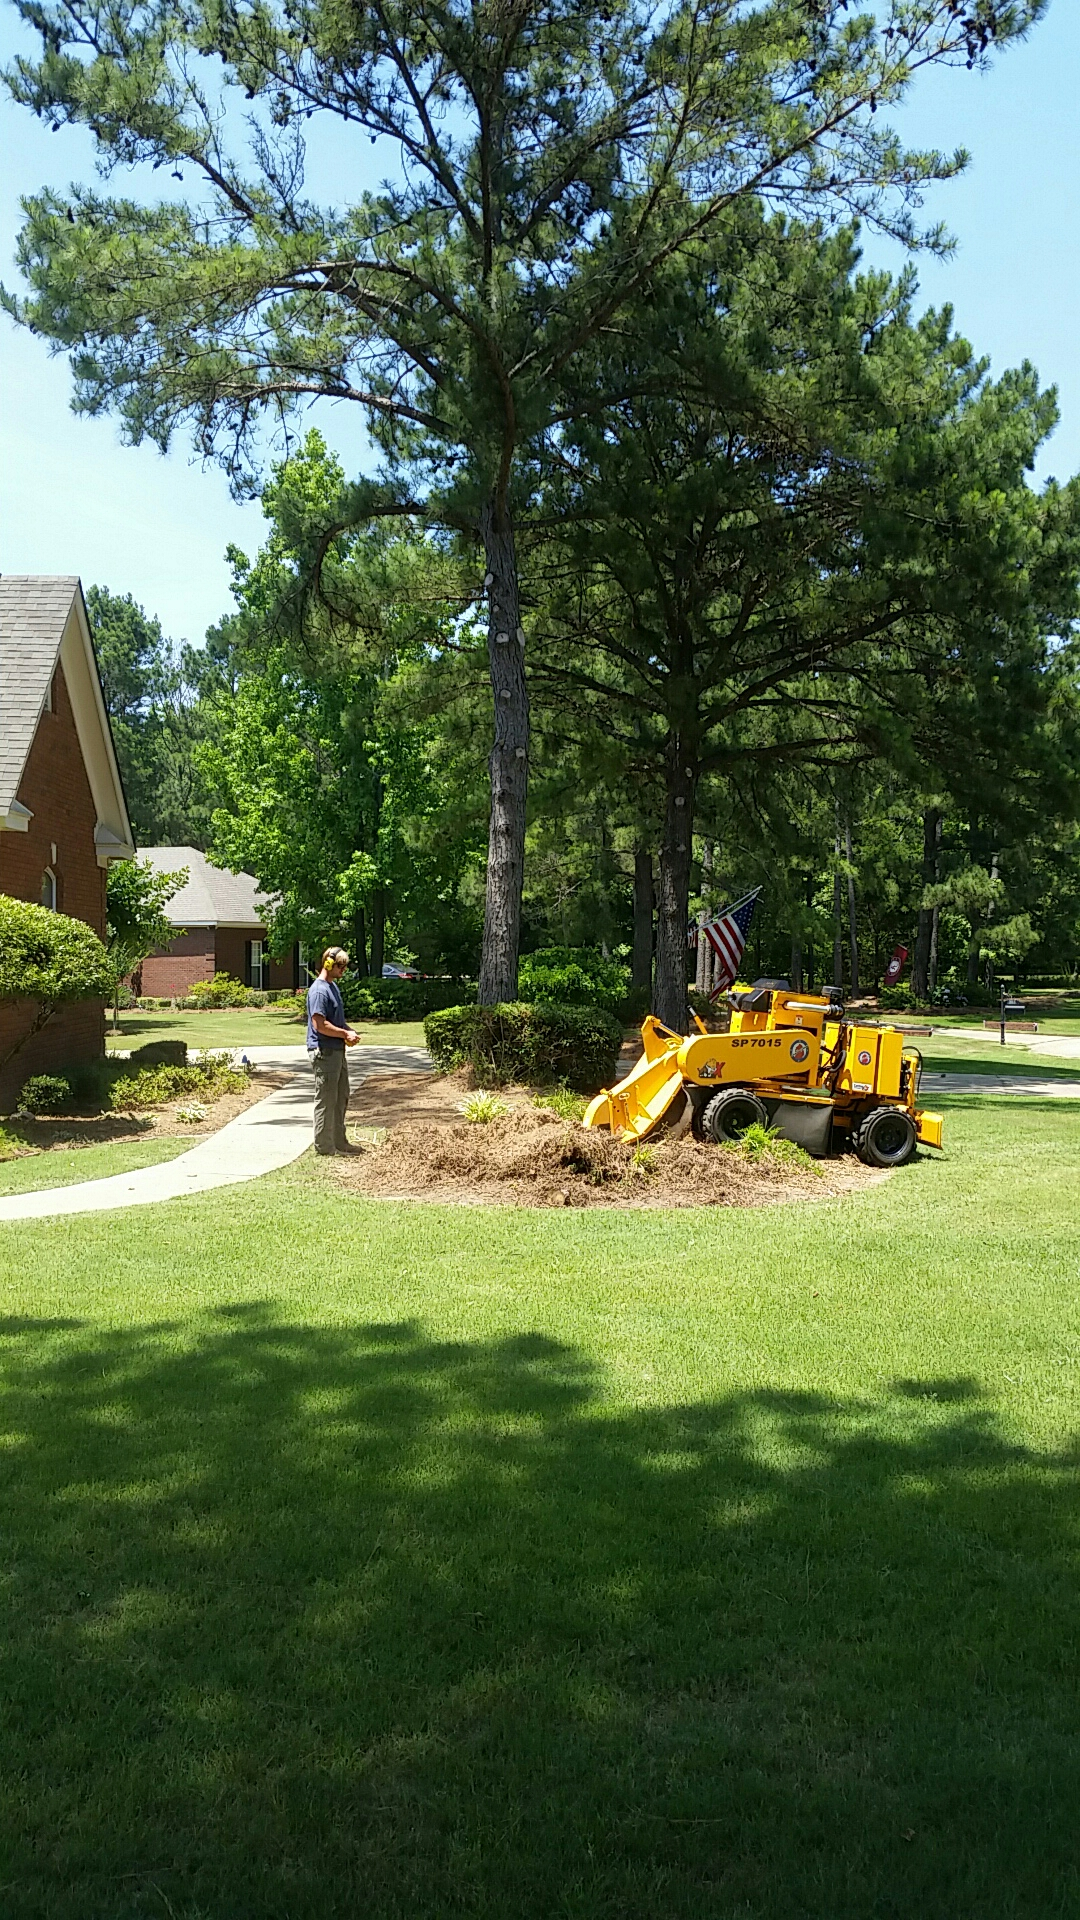 Pike Road, AL - Landscape renovation project Residential Services remove pine tree cut and core out stump preparations for new landscape bed. Project will include Japanese maples procumbens Juniper drift roses and hydrangeas